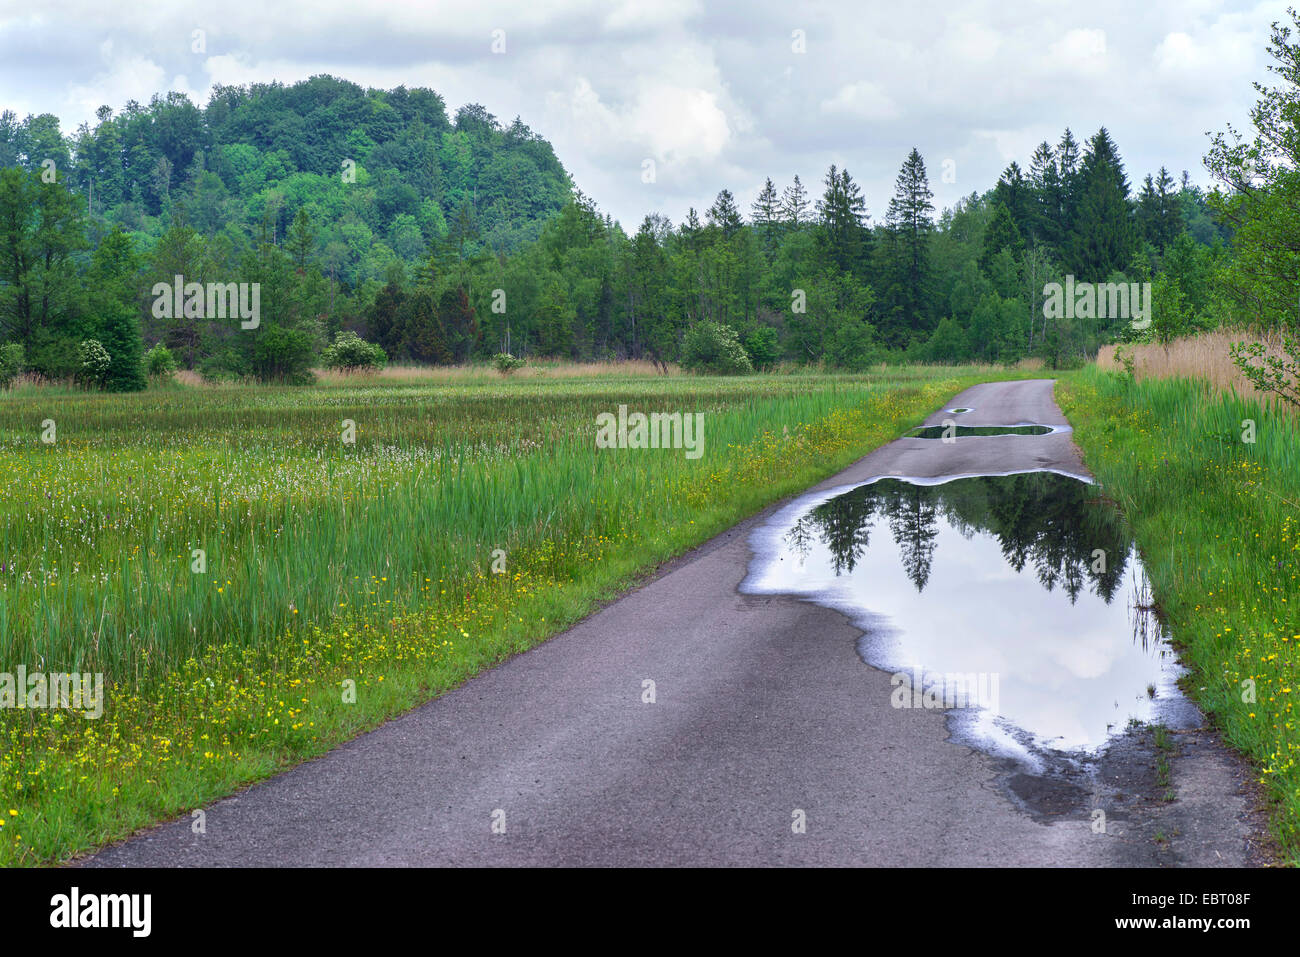 sealed road with puddles in wetlands, Germany, Bavaria, Oberbayern, Upper Bavaria, Murnauer Moos - Stock Image